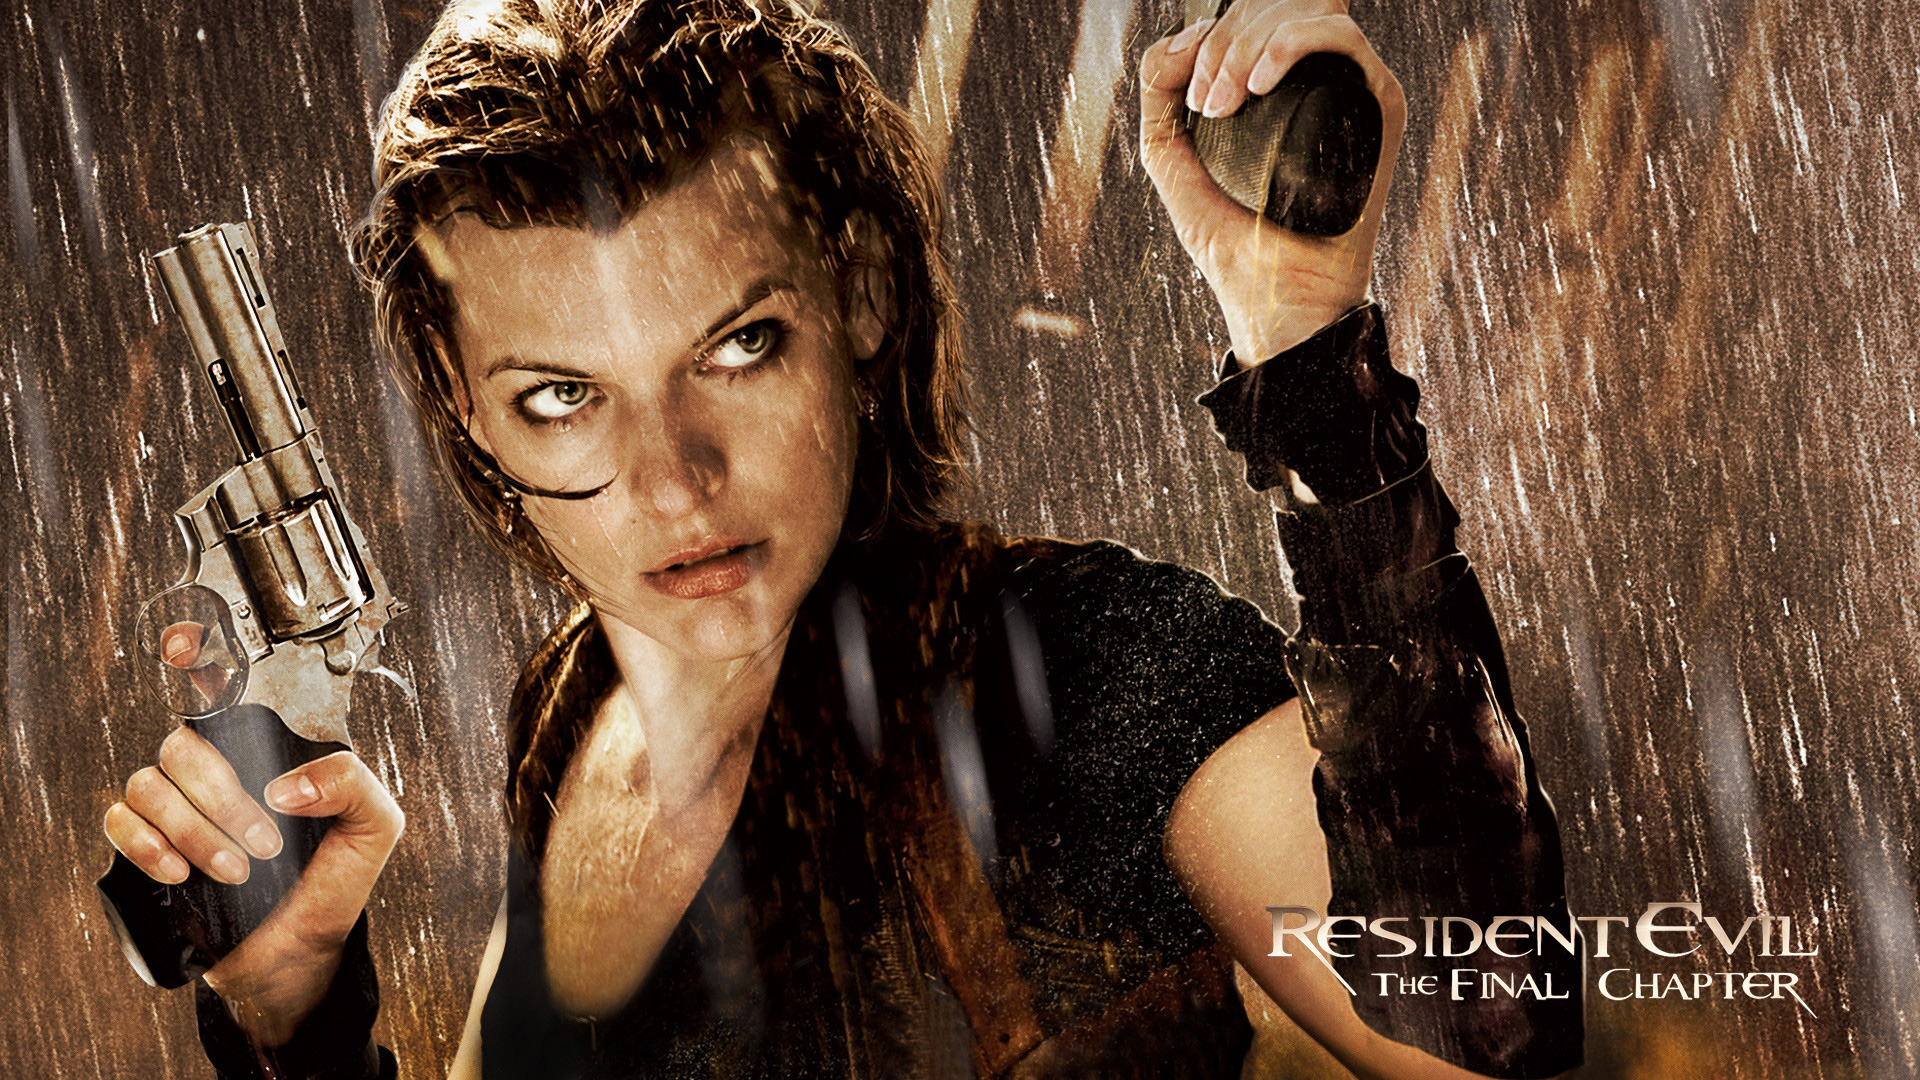 Resident evil the final chapter hd wallpapers - Resident evil the final chapter wallpaper ...